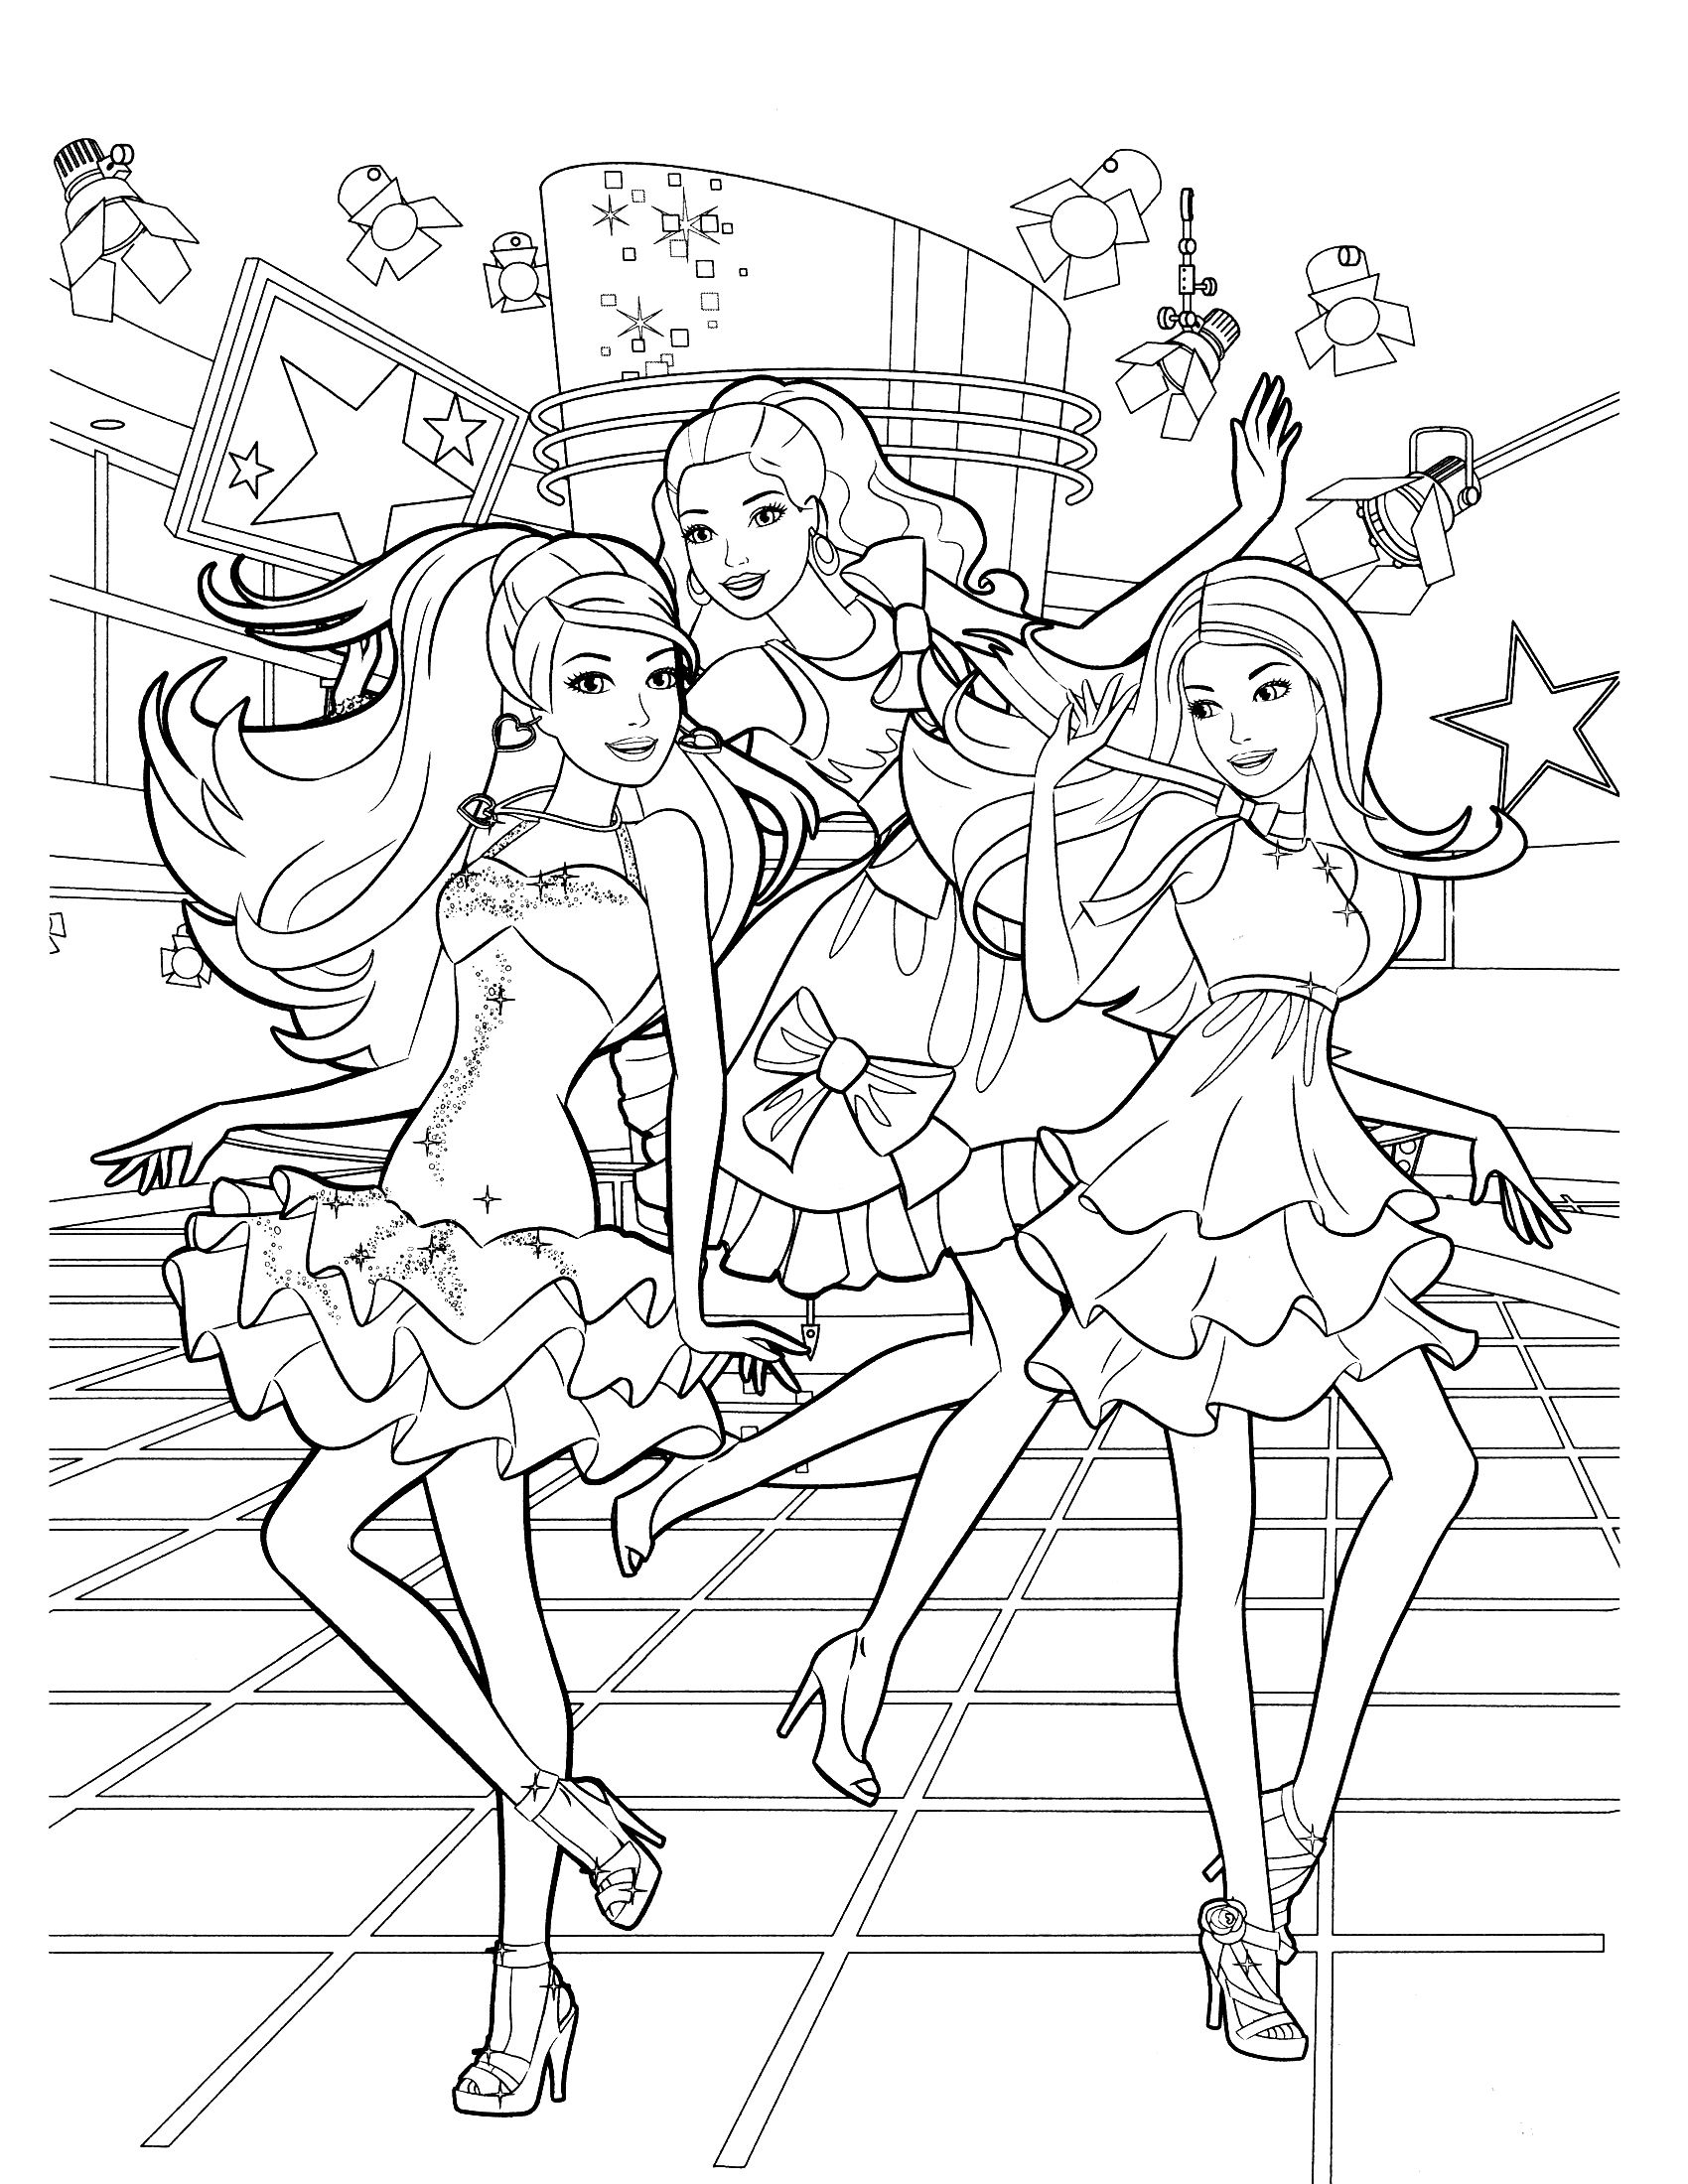 barbie doll colouring coloring pages barbie free printable coloring pages colouring doll barbie 1 1